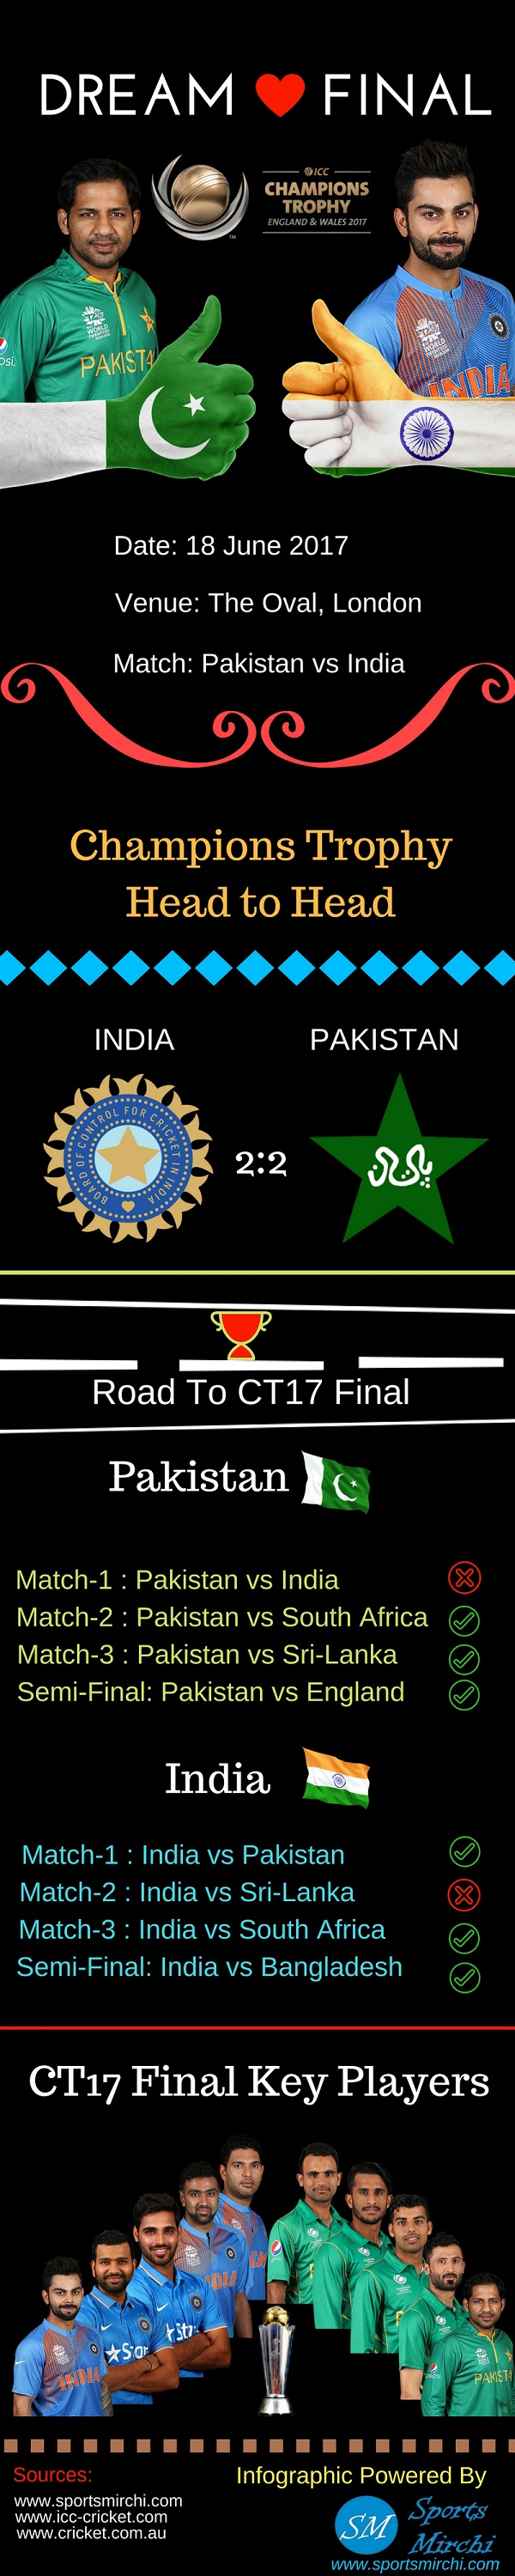 India vs Pakistan Dream Final infographic